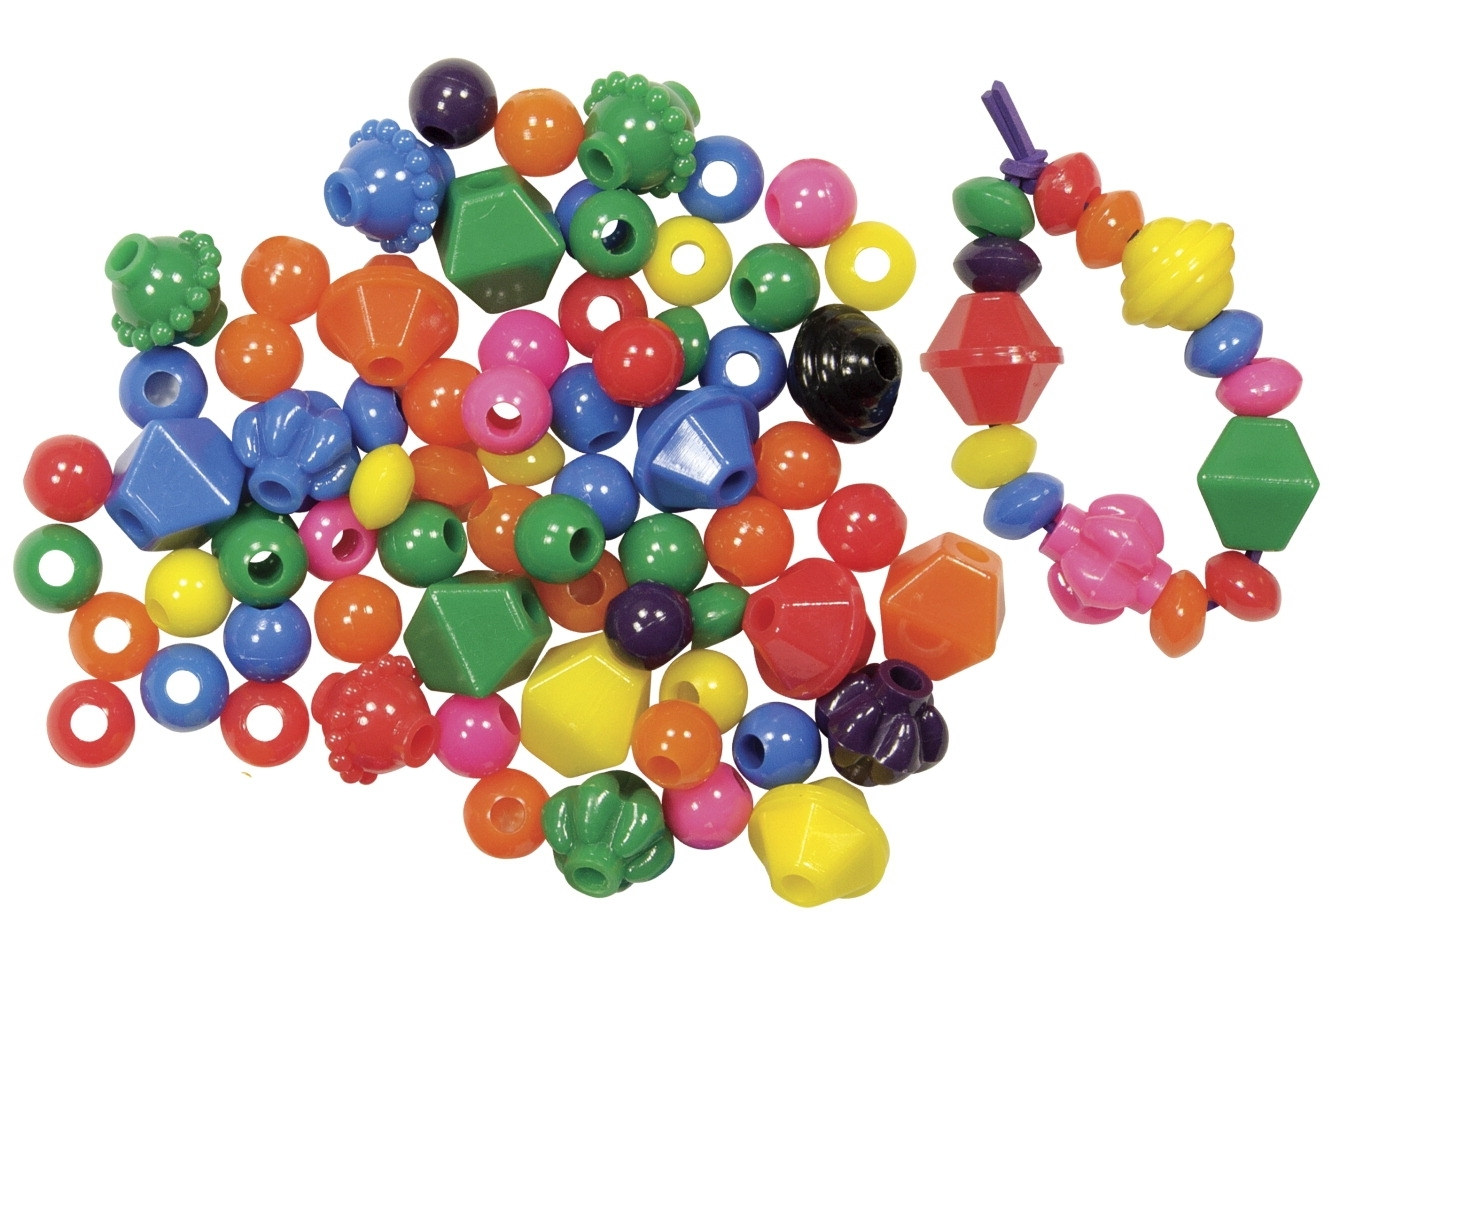 Learning: Supplies Art & Craft Supplies Beads & Beading Supplies - 1526155 - Roylco Oversized Bead; Assorted Size; Assorted Colors; Pack Of 100 1526155